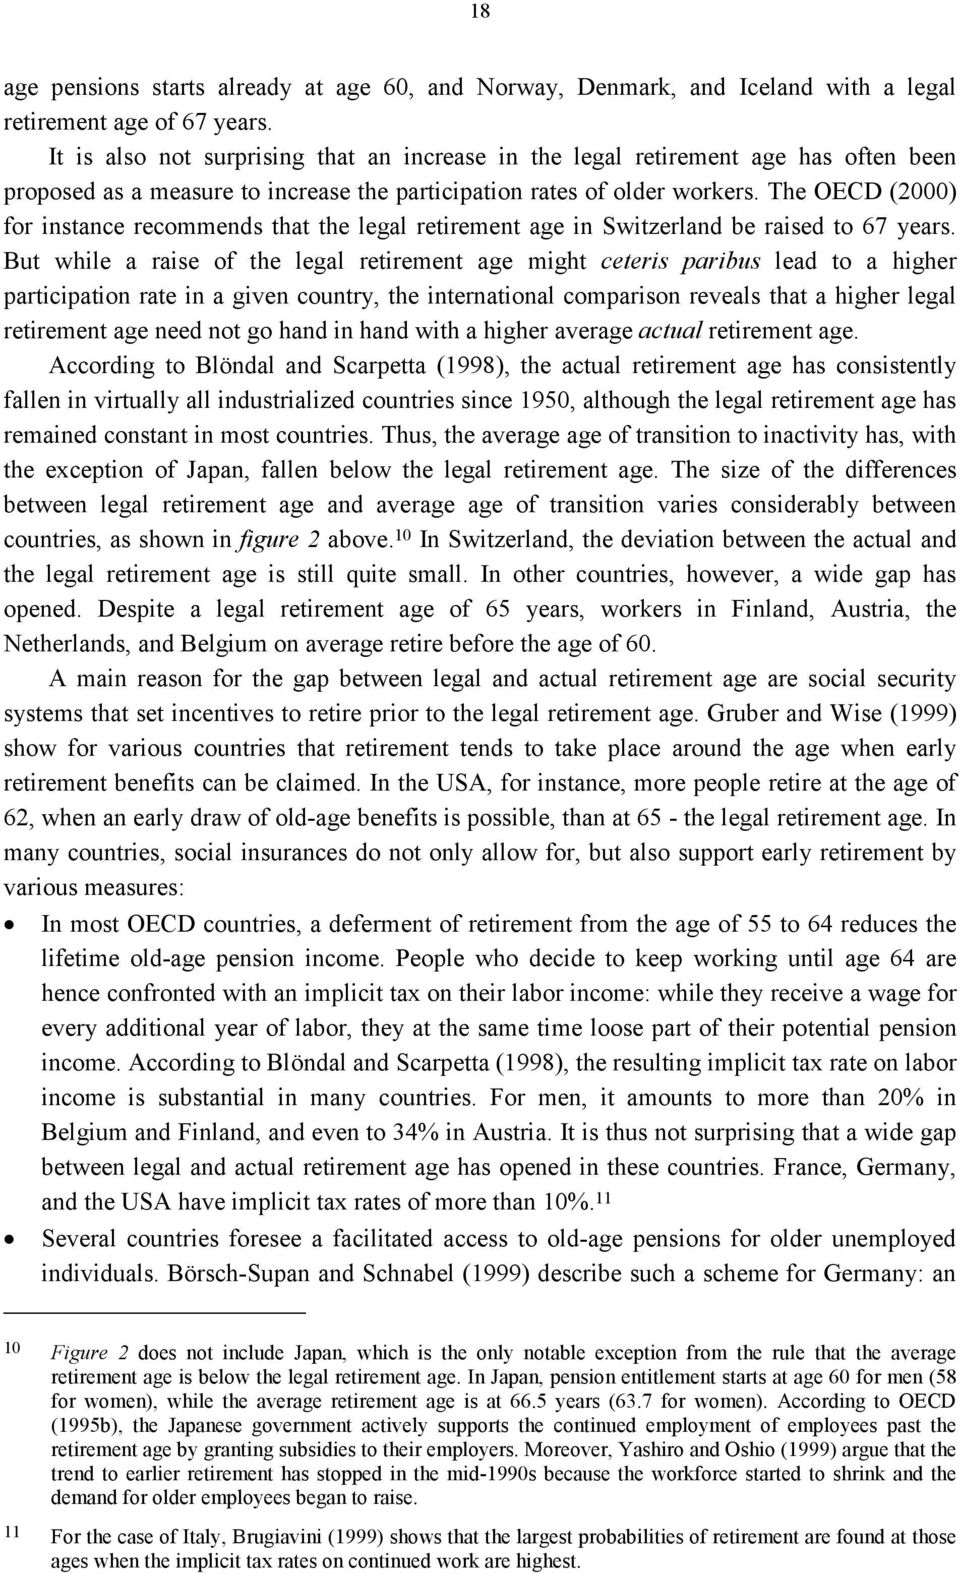 The OECD (2000) for instance recommends that the legal retirement age in Switzerland be raised to 67 years.